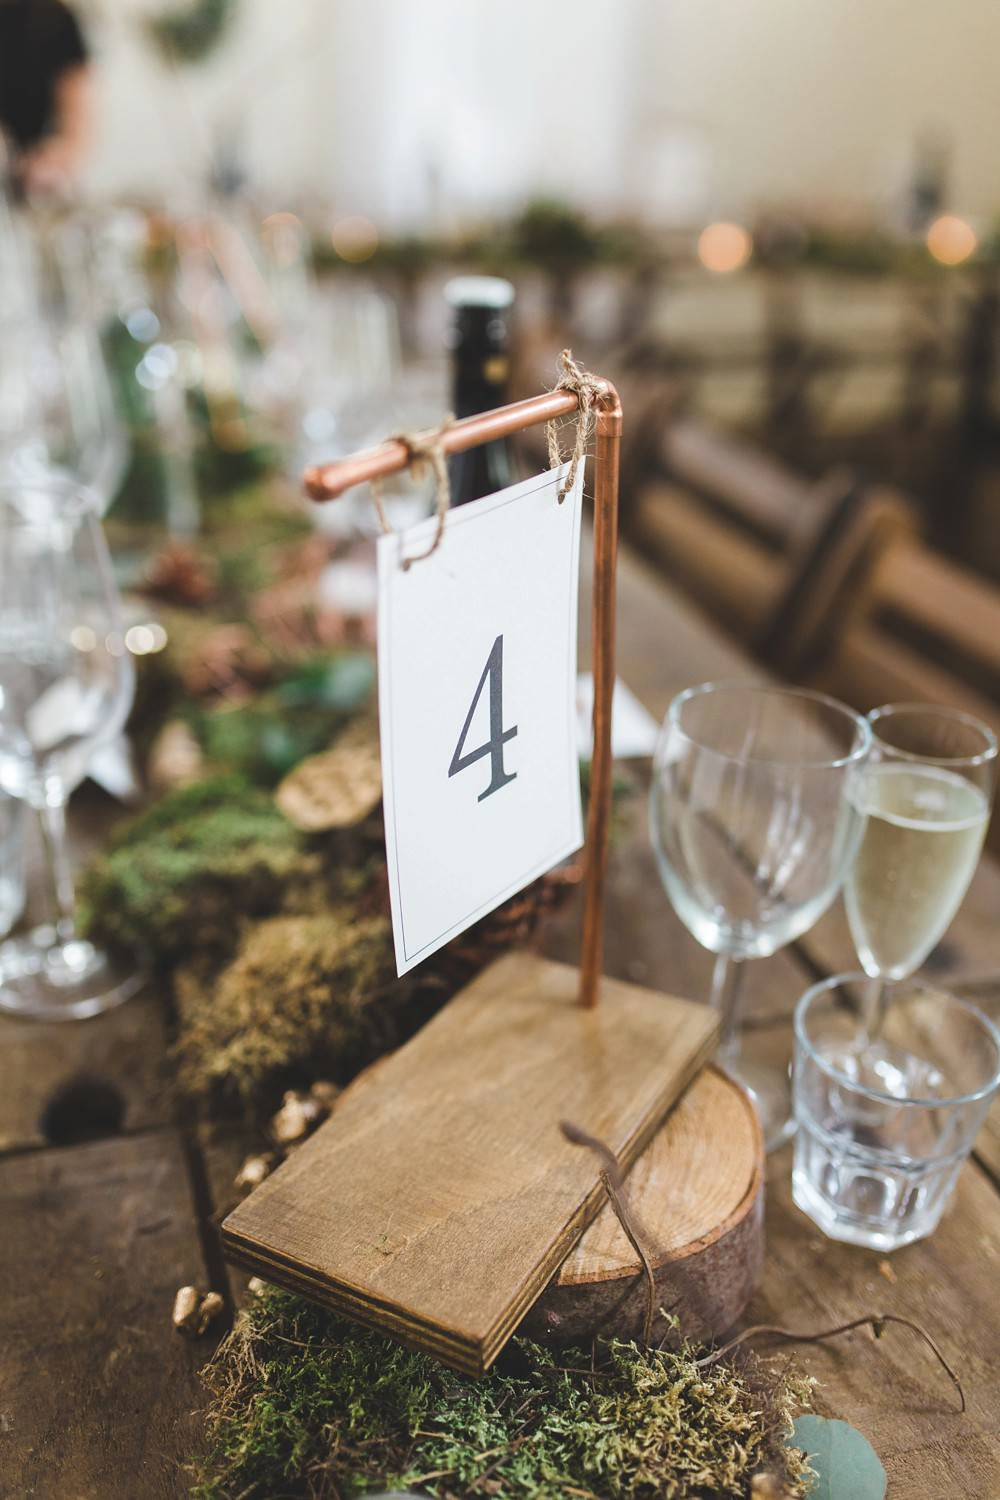 Copper Pipe Wood Table Name Number Letchworth Wedding Milkbottle Photography